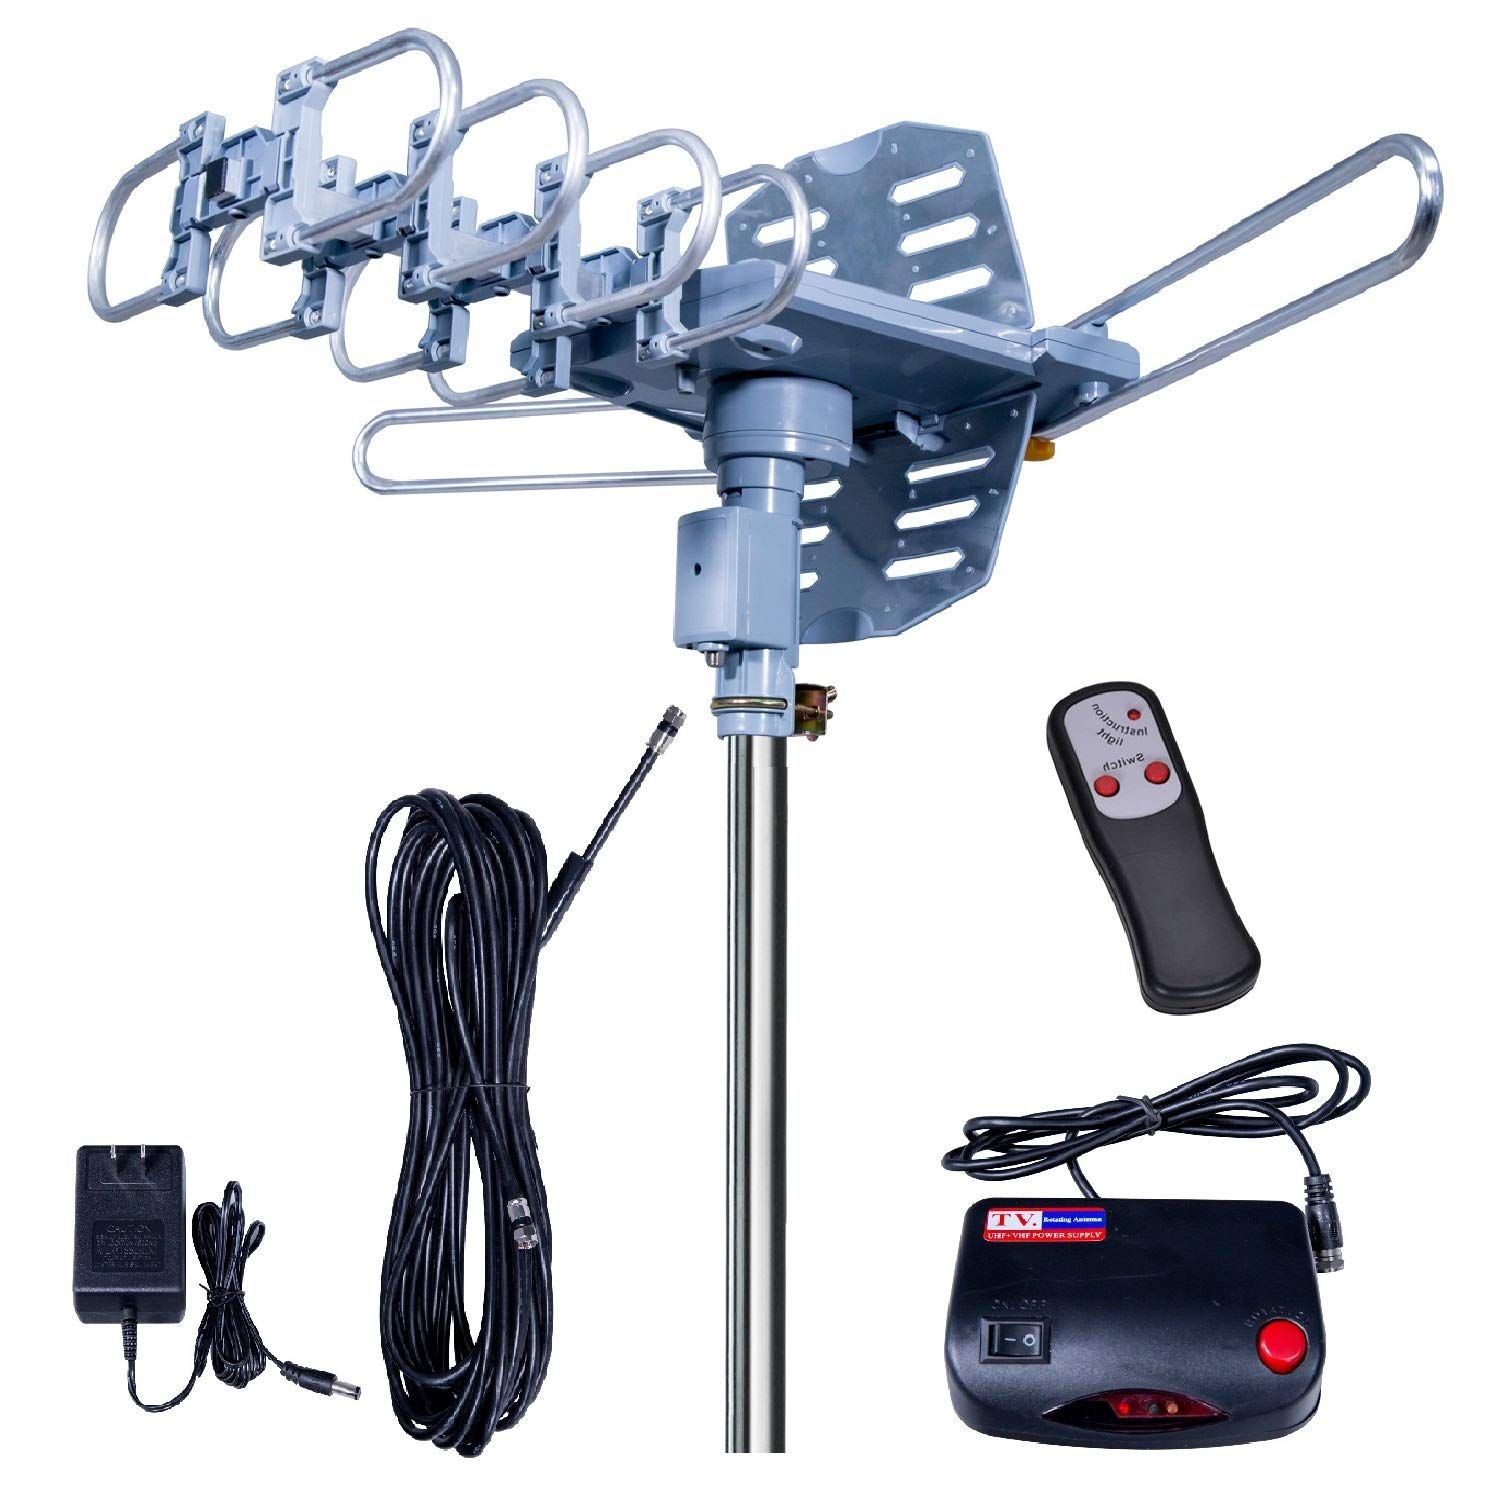 Top 7 best antenna for rural areas Buying Review 2020 in